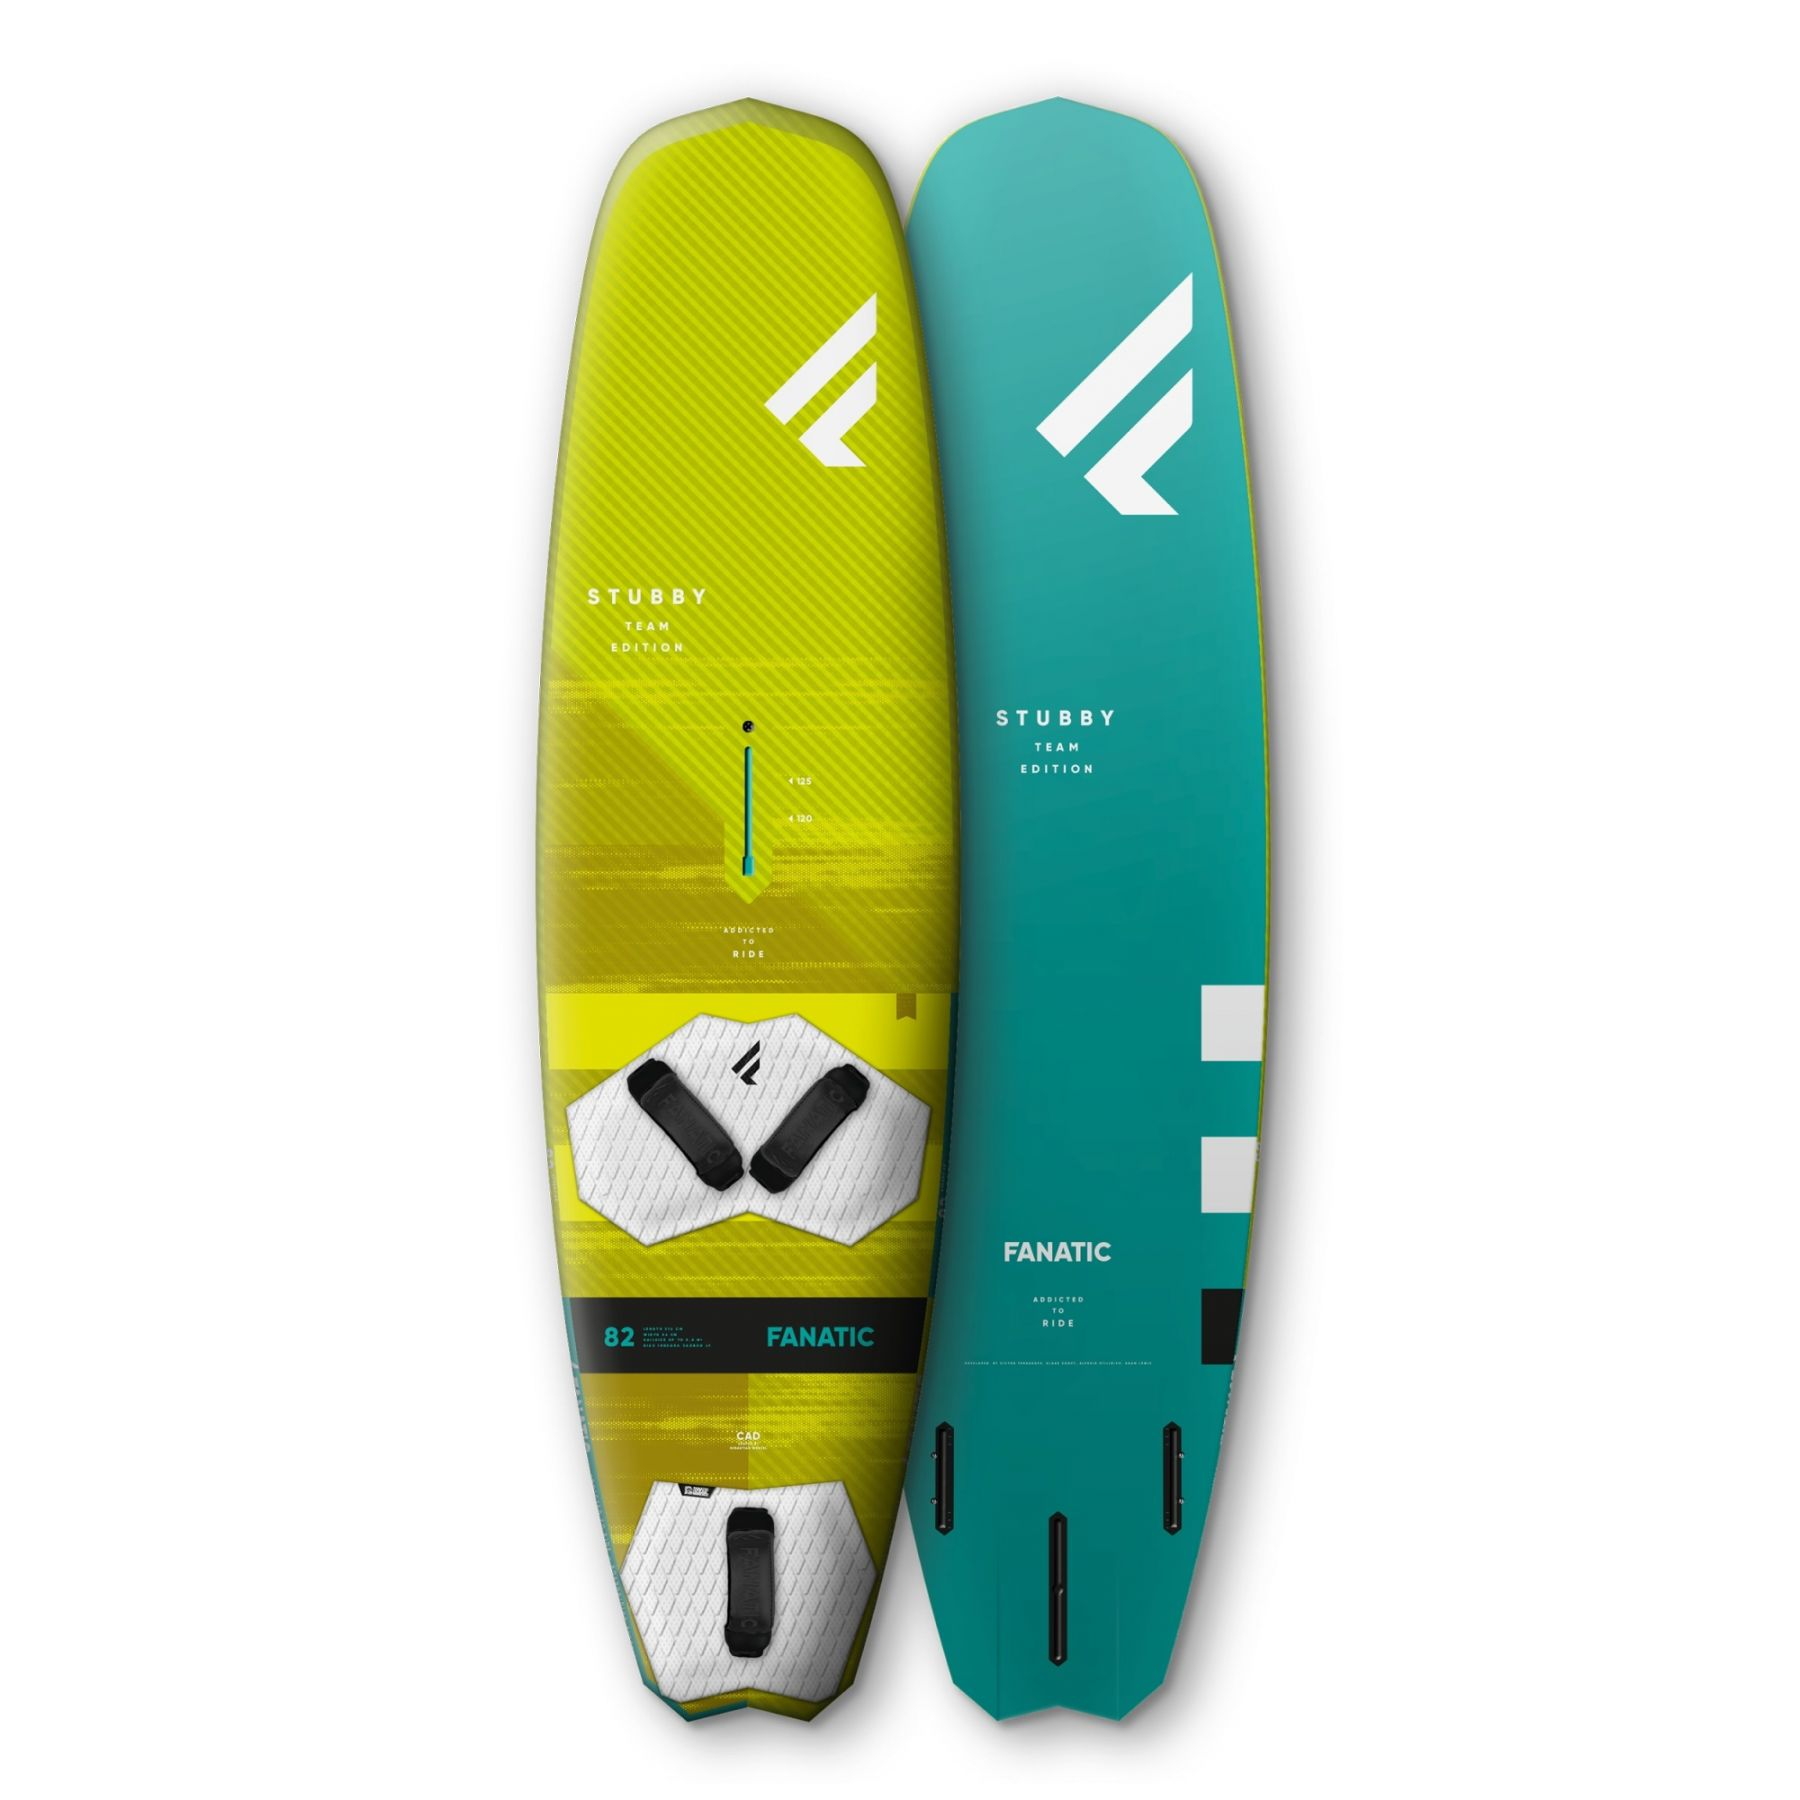 Tabla de windsurf Fanatic Stubby T.E